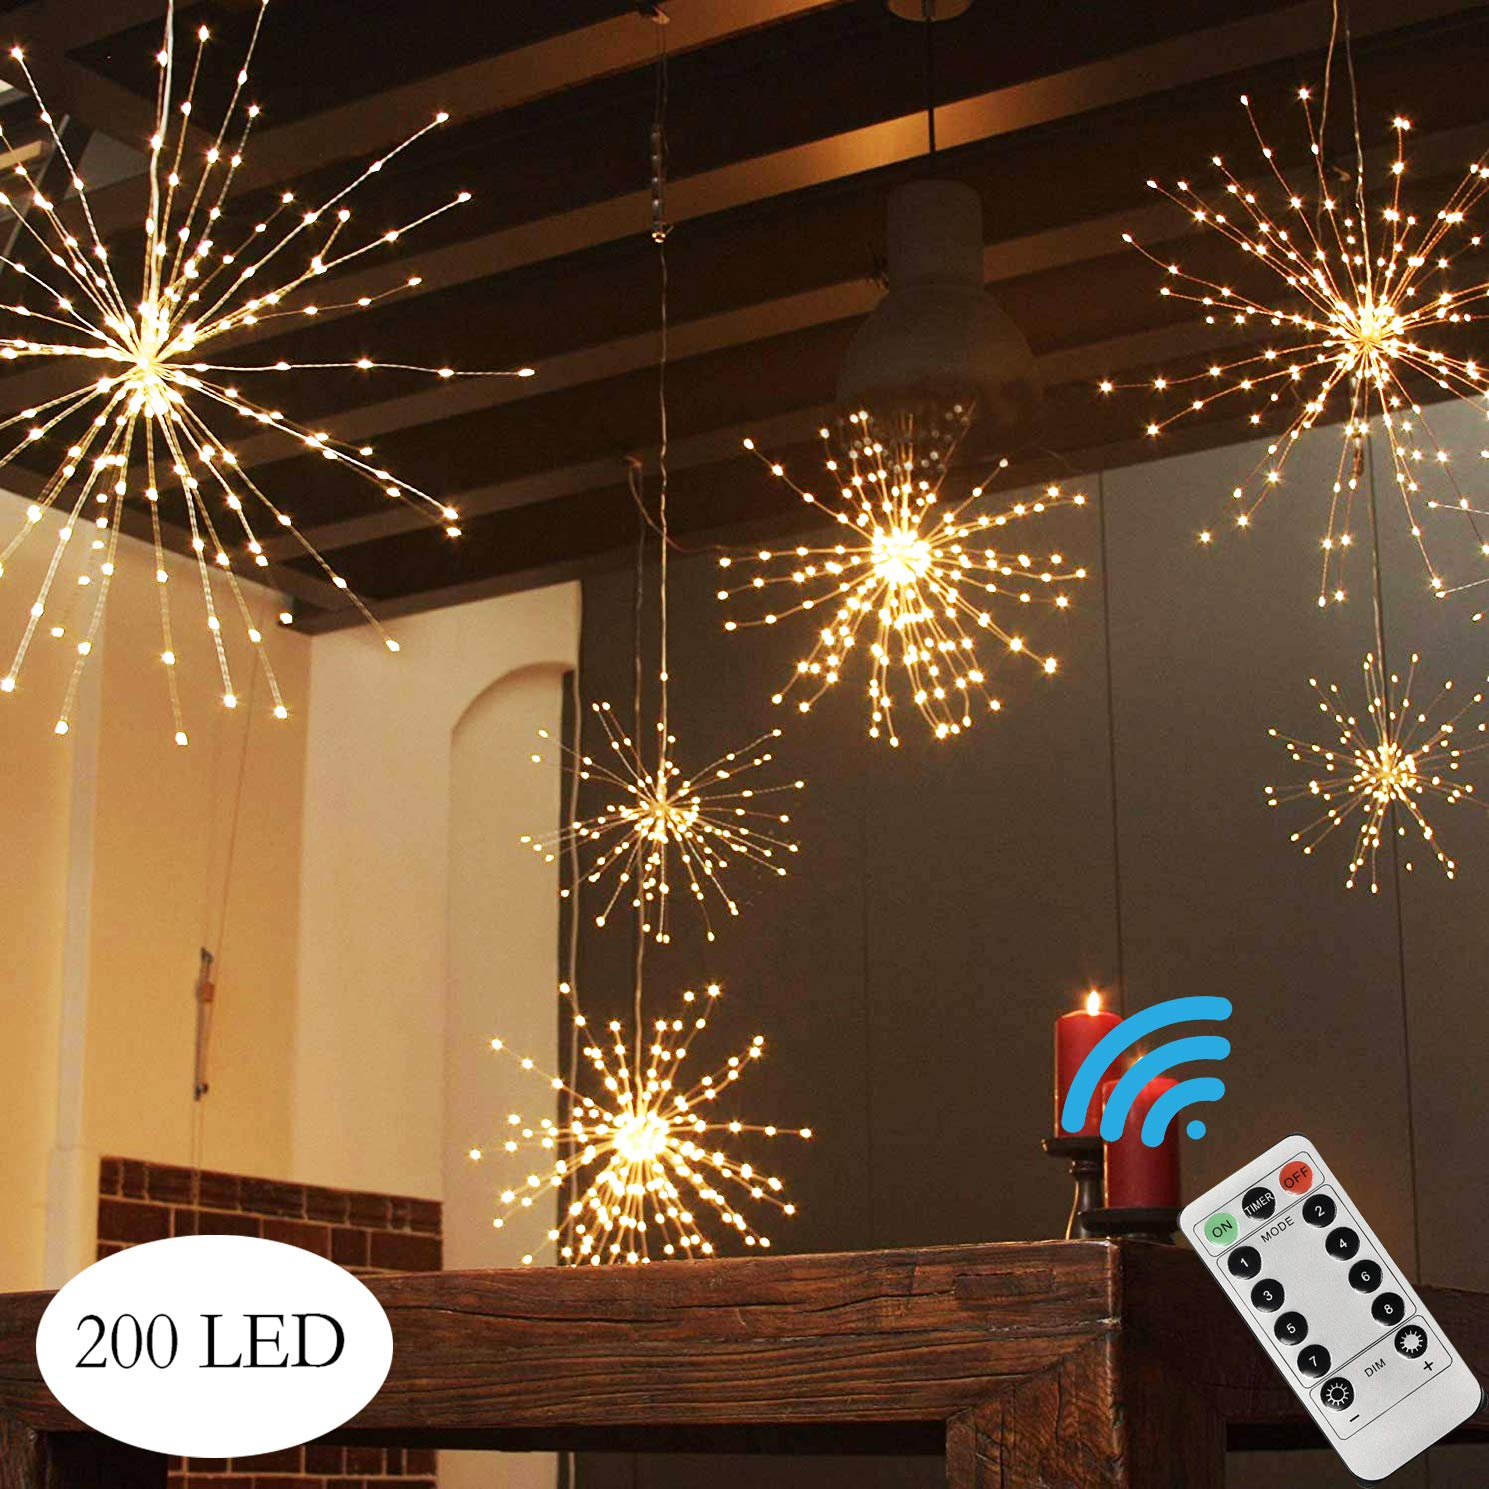 PXB 200LED Hanging Lights Battery Operated Starburst Lights 8 Modes Dimmable Remote Control Waterproof Fairy Lights Copper Wire Lights Indoors Outdoors Patio Christmas Decoration Warm White